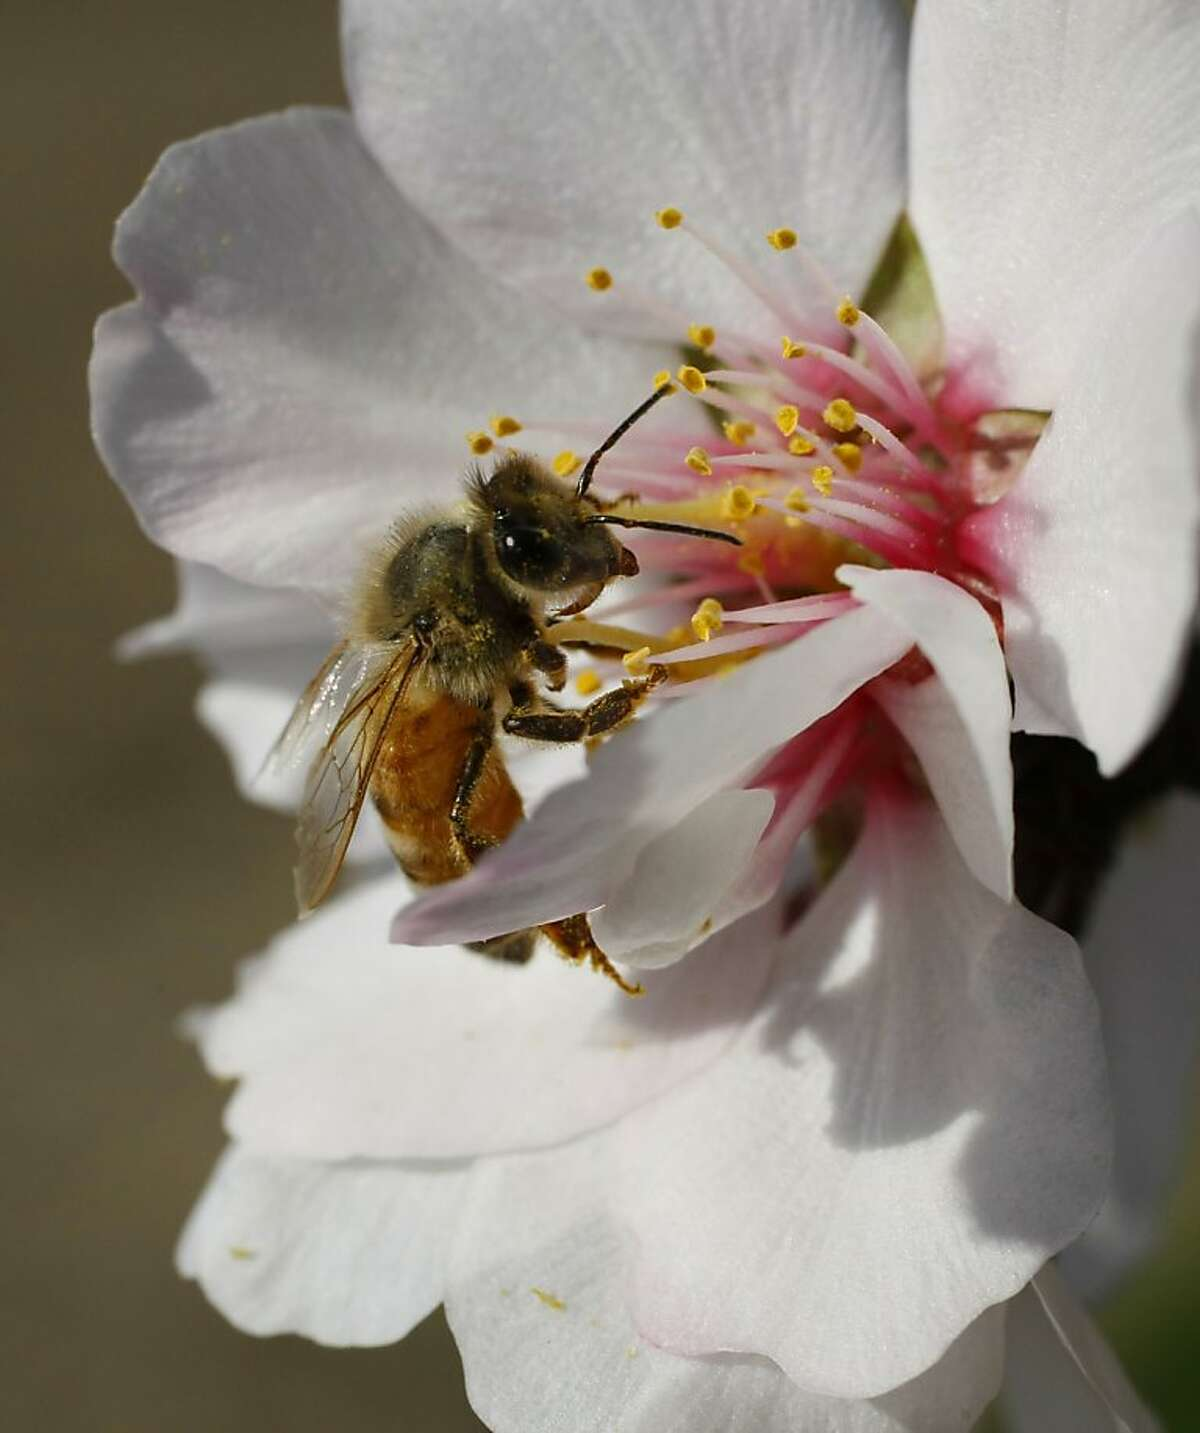 A special breed of honeybee from Arizona gathers pollen from an almond blossom in a Dixon, Calif. orchard on March 3, 2008. Researchers at UC Davis are experimenting with various breeds of bees hoping to find one that can resist the diseases and parasites that are affecting bees throughout the country, a huge threat to agriculture. Bees are needed to pollinate many of California's crops, including the almond trees now in full bloom. Photo by Michael Maloney / San Francisco Chronicle